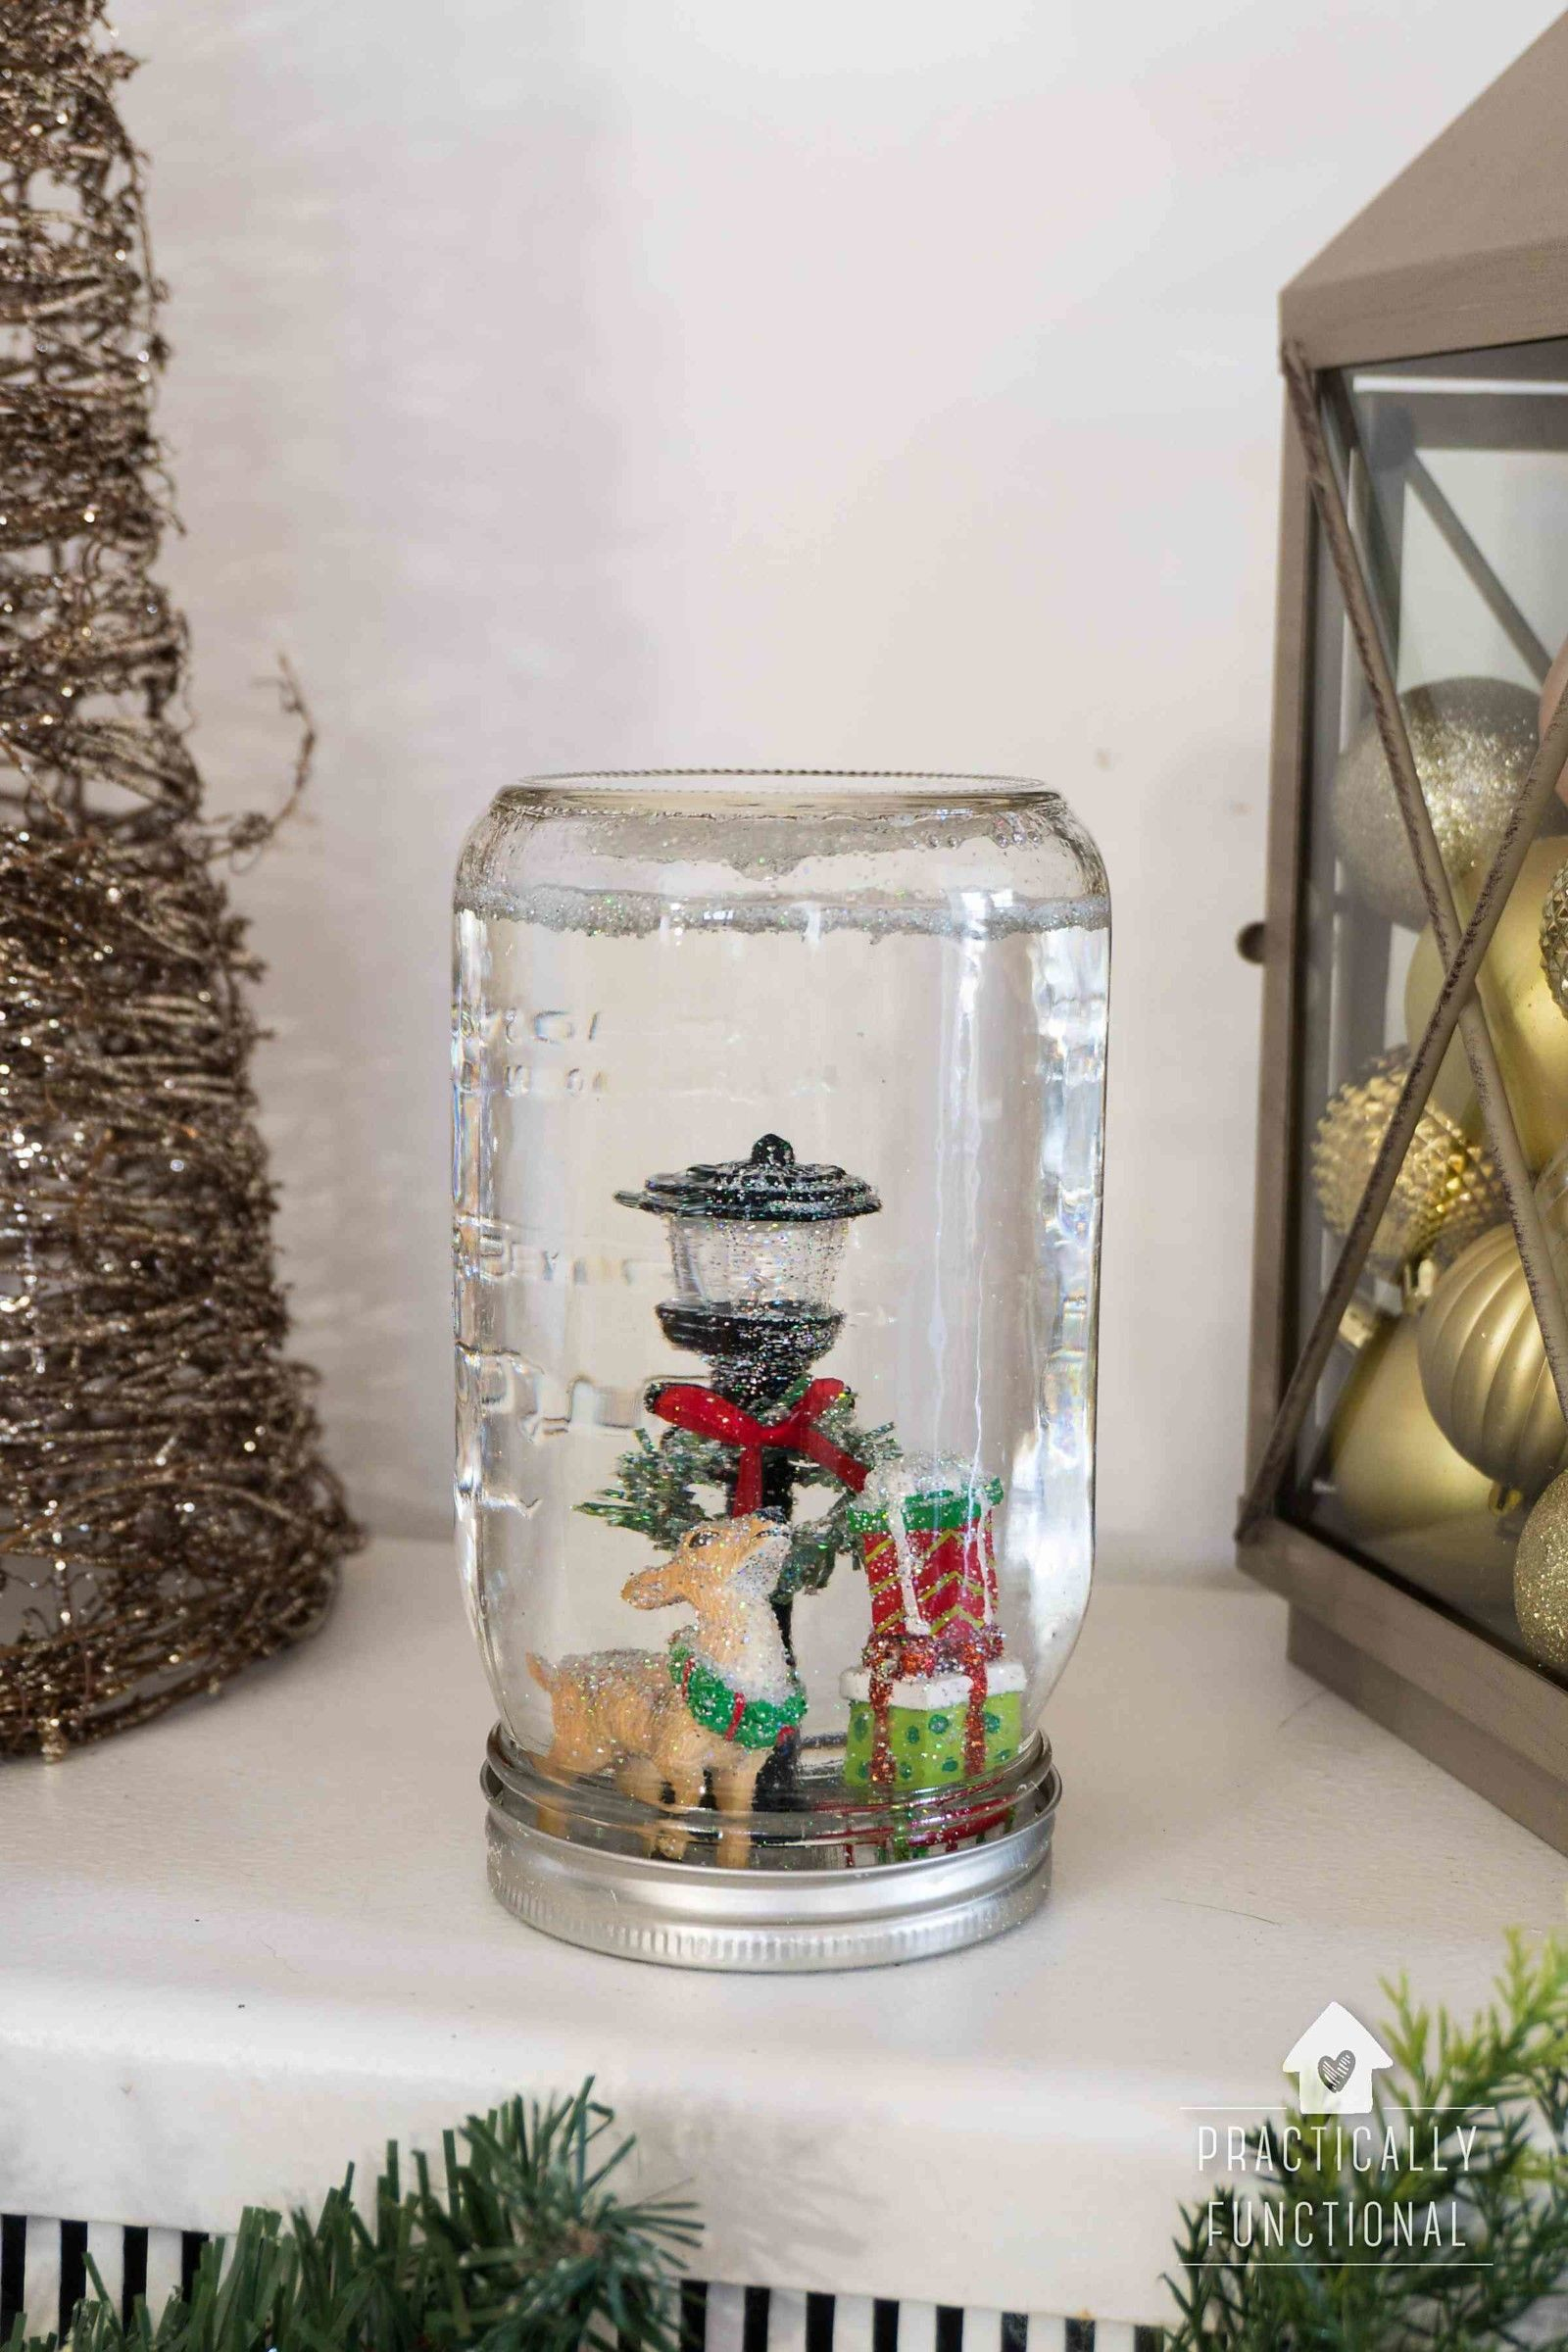 How To Make A Snow Globe Snow Globes Christmas Projects For